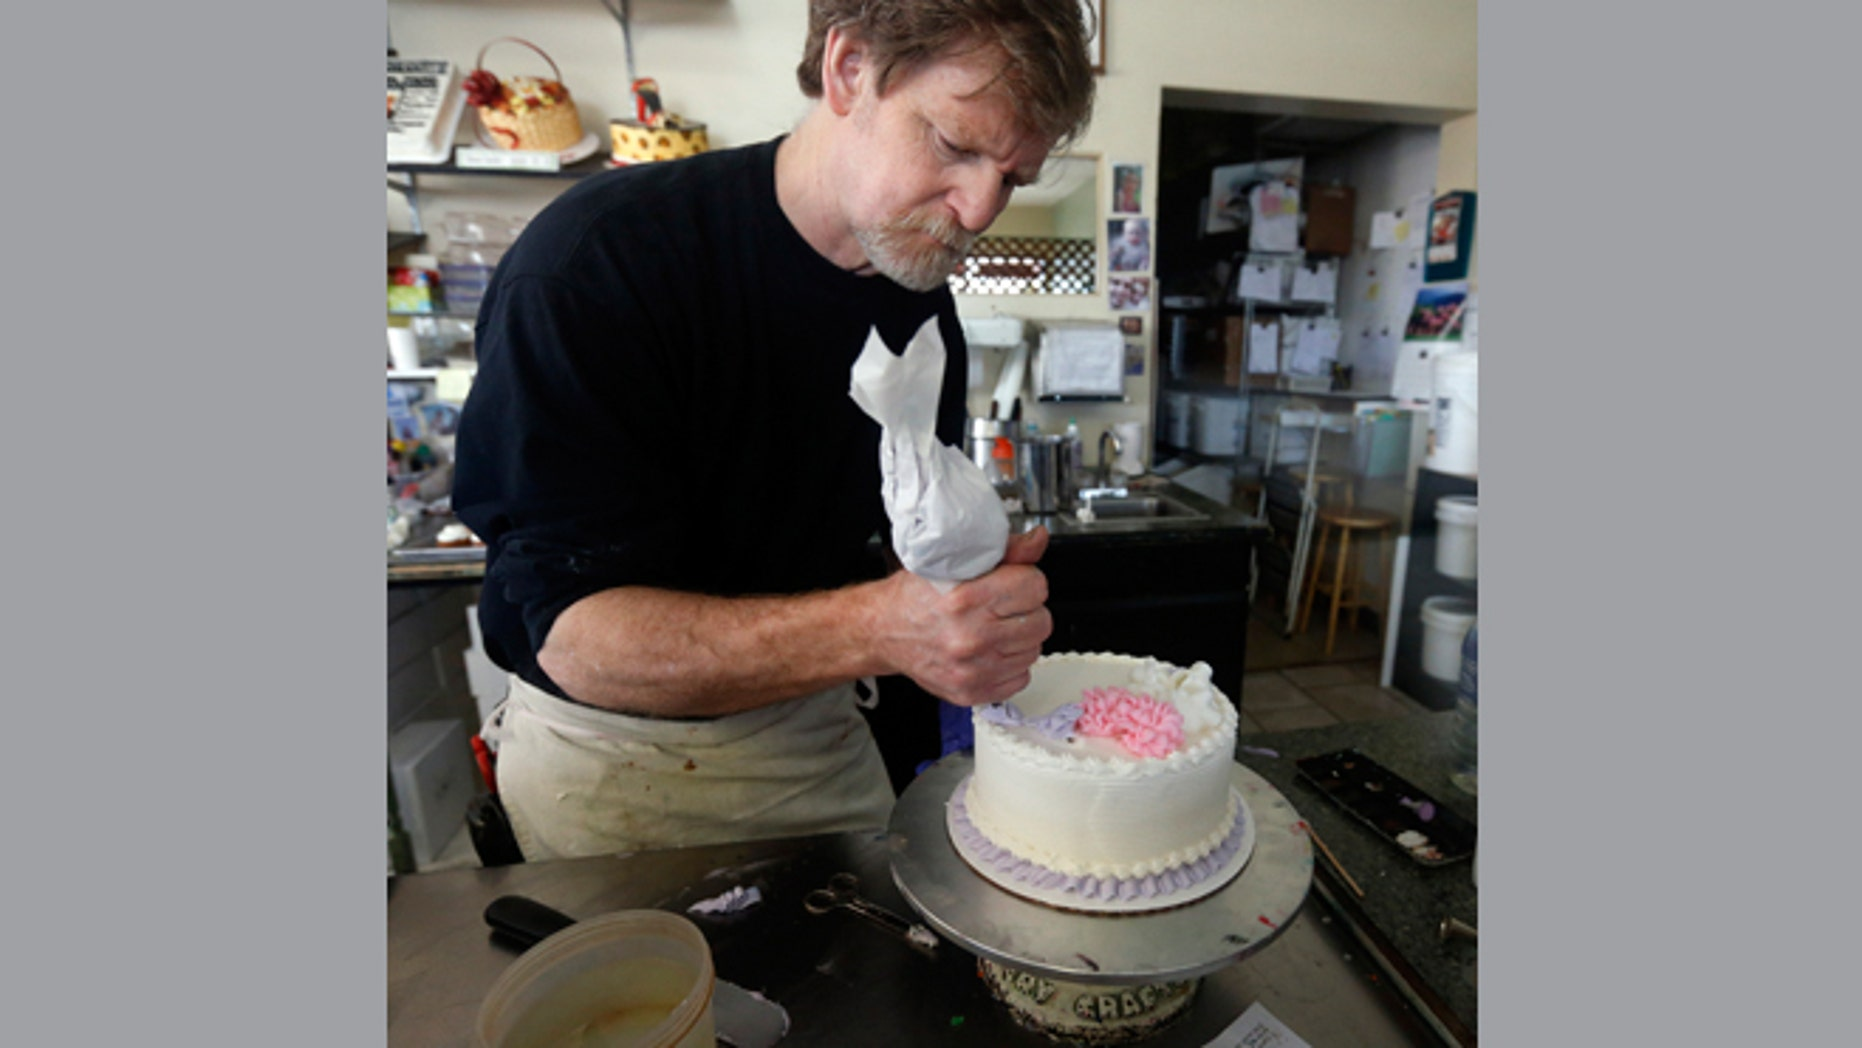 File: March 10, 2014: Masterpiece Cakeshop owner Jack Phillips decorates a cake inside his store, in Lakewood, Colo.